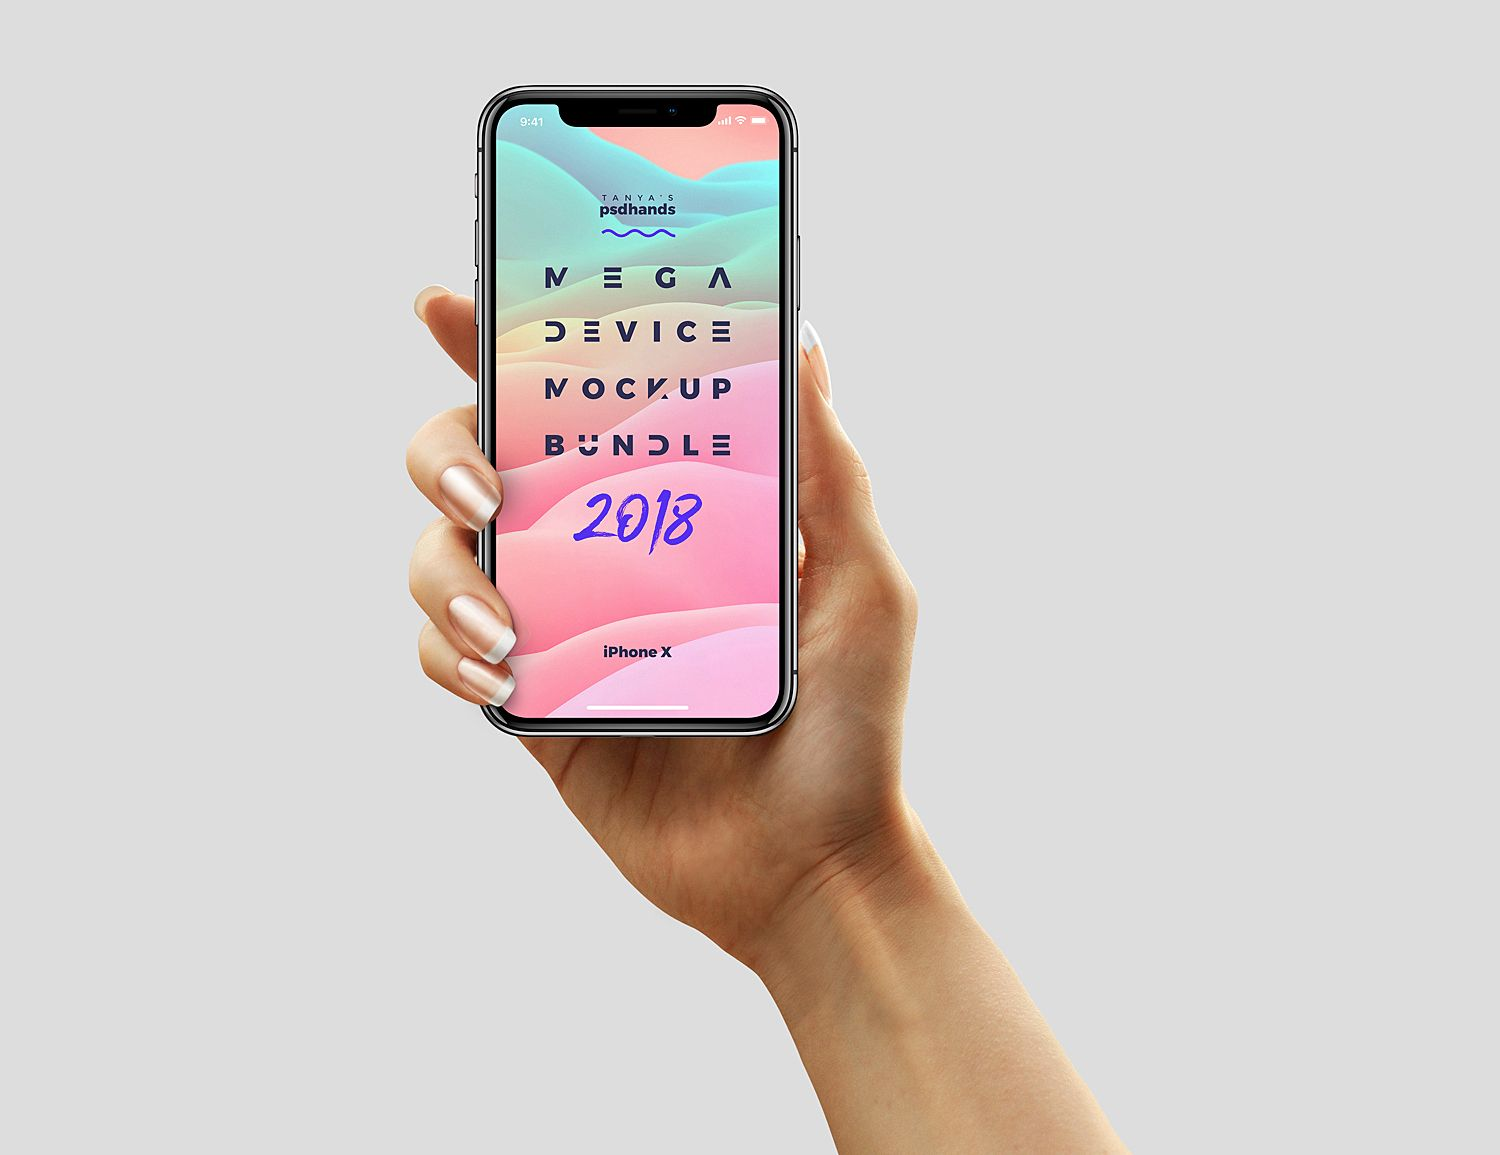 Iphone X Iphone 8 And Samsung S8 Mockups Free Mockup Iphone Samsung Iphone 8